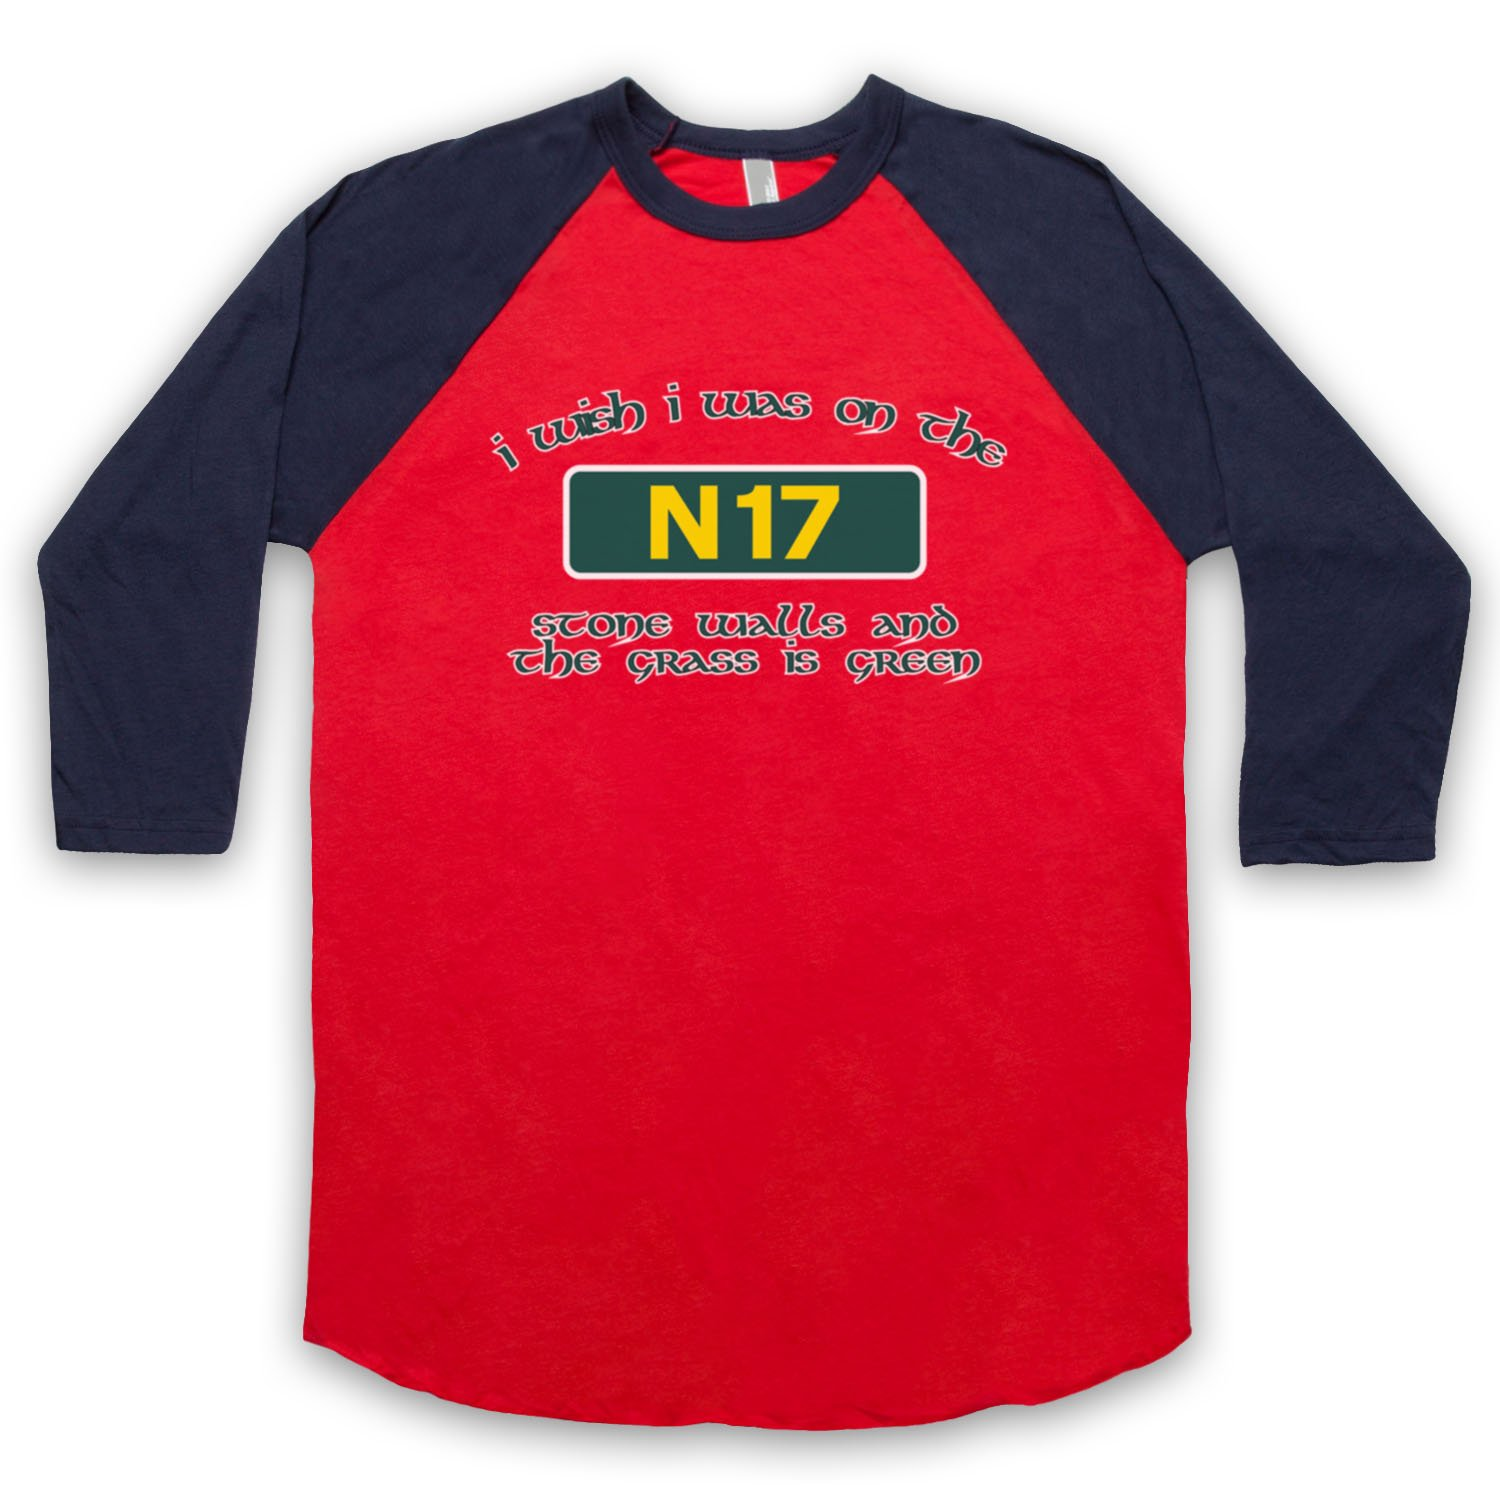 Inspired by Saw Doctors N17 Unofficial 3/4 Sleeve Retro Baseball Tee